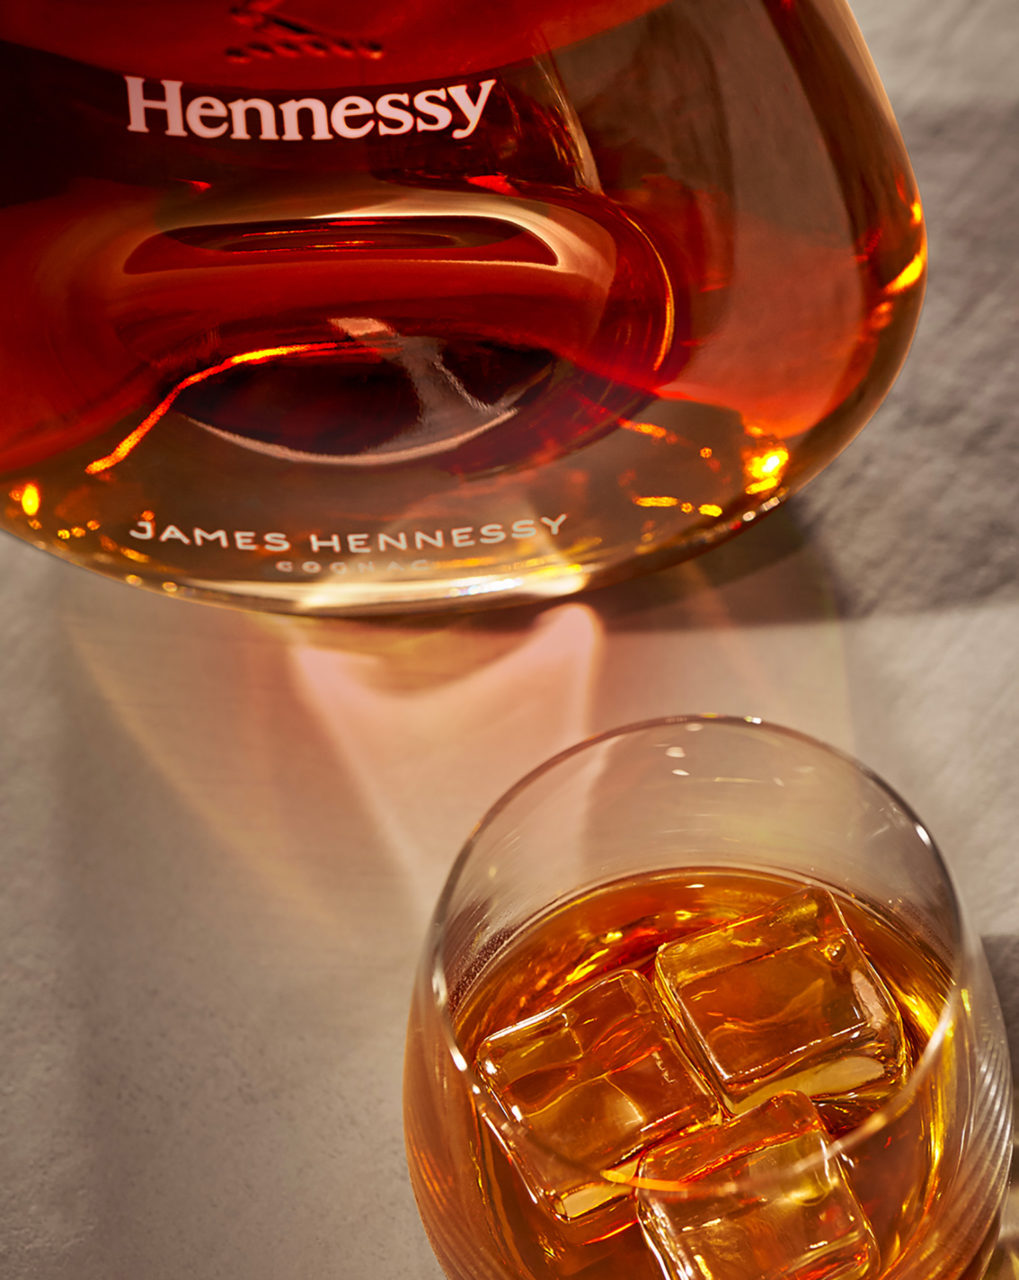 Hennessy by sarah aubel